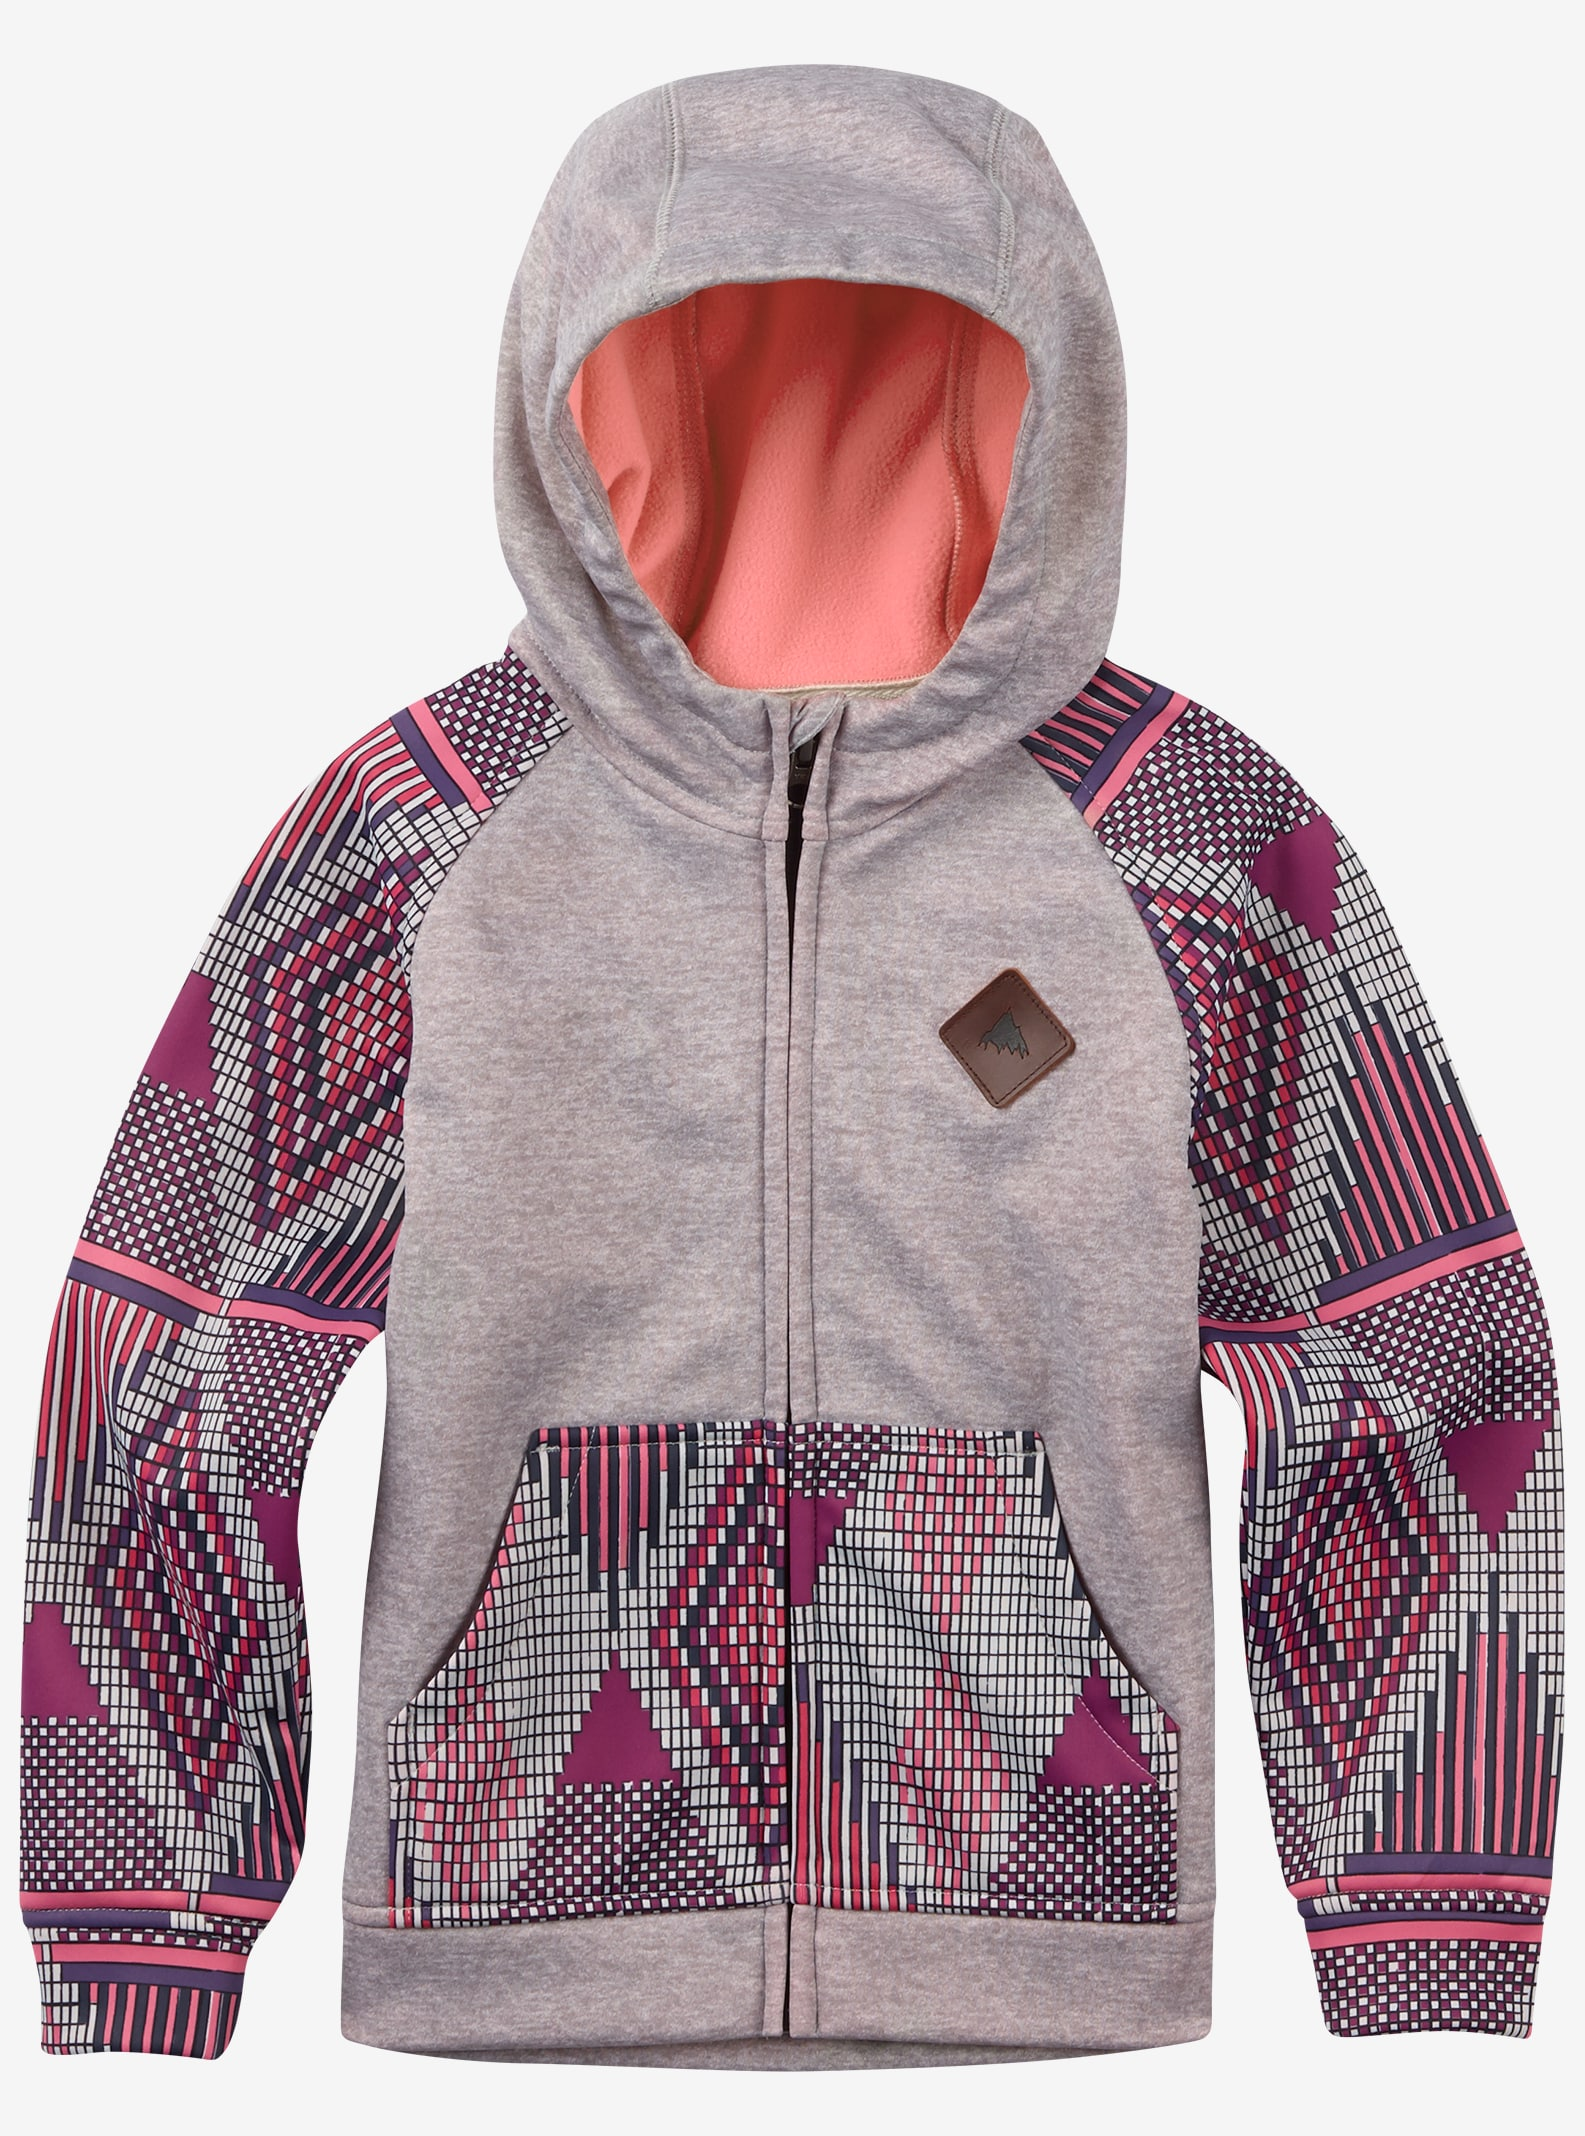 Burton Girls' Mini Scoop Full-Zip Hoodie shown in Canvas Heather